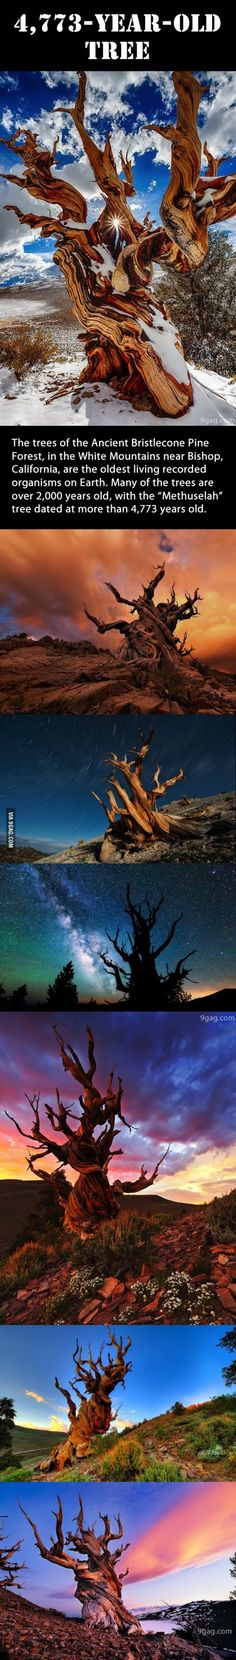 The Oldest Living Organism on Earth – Ancient Bristlecone Pine Forest, White Mountains, California